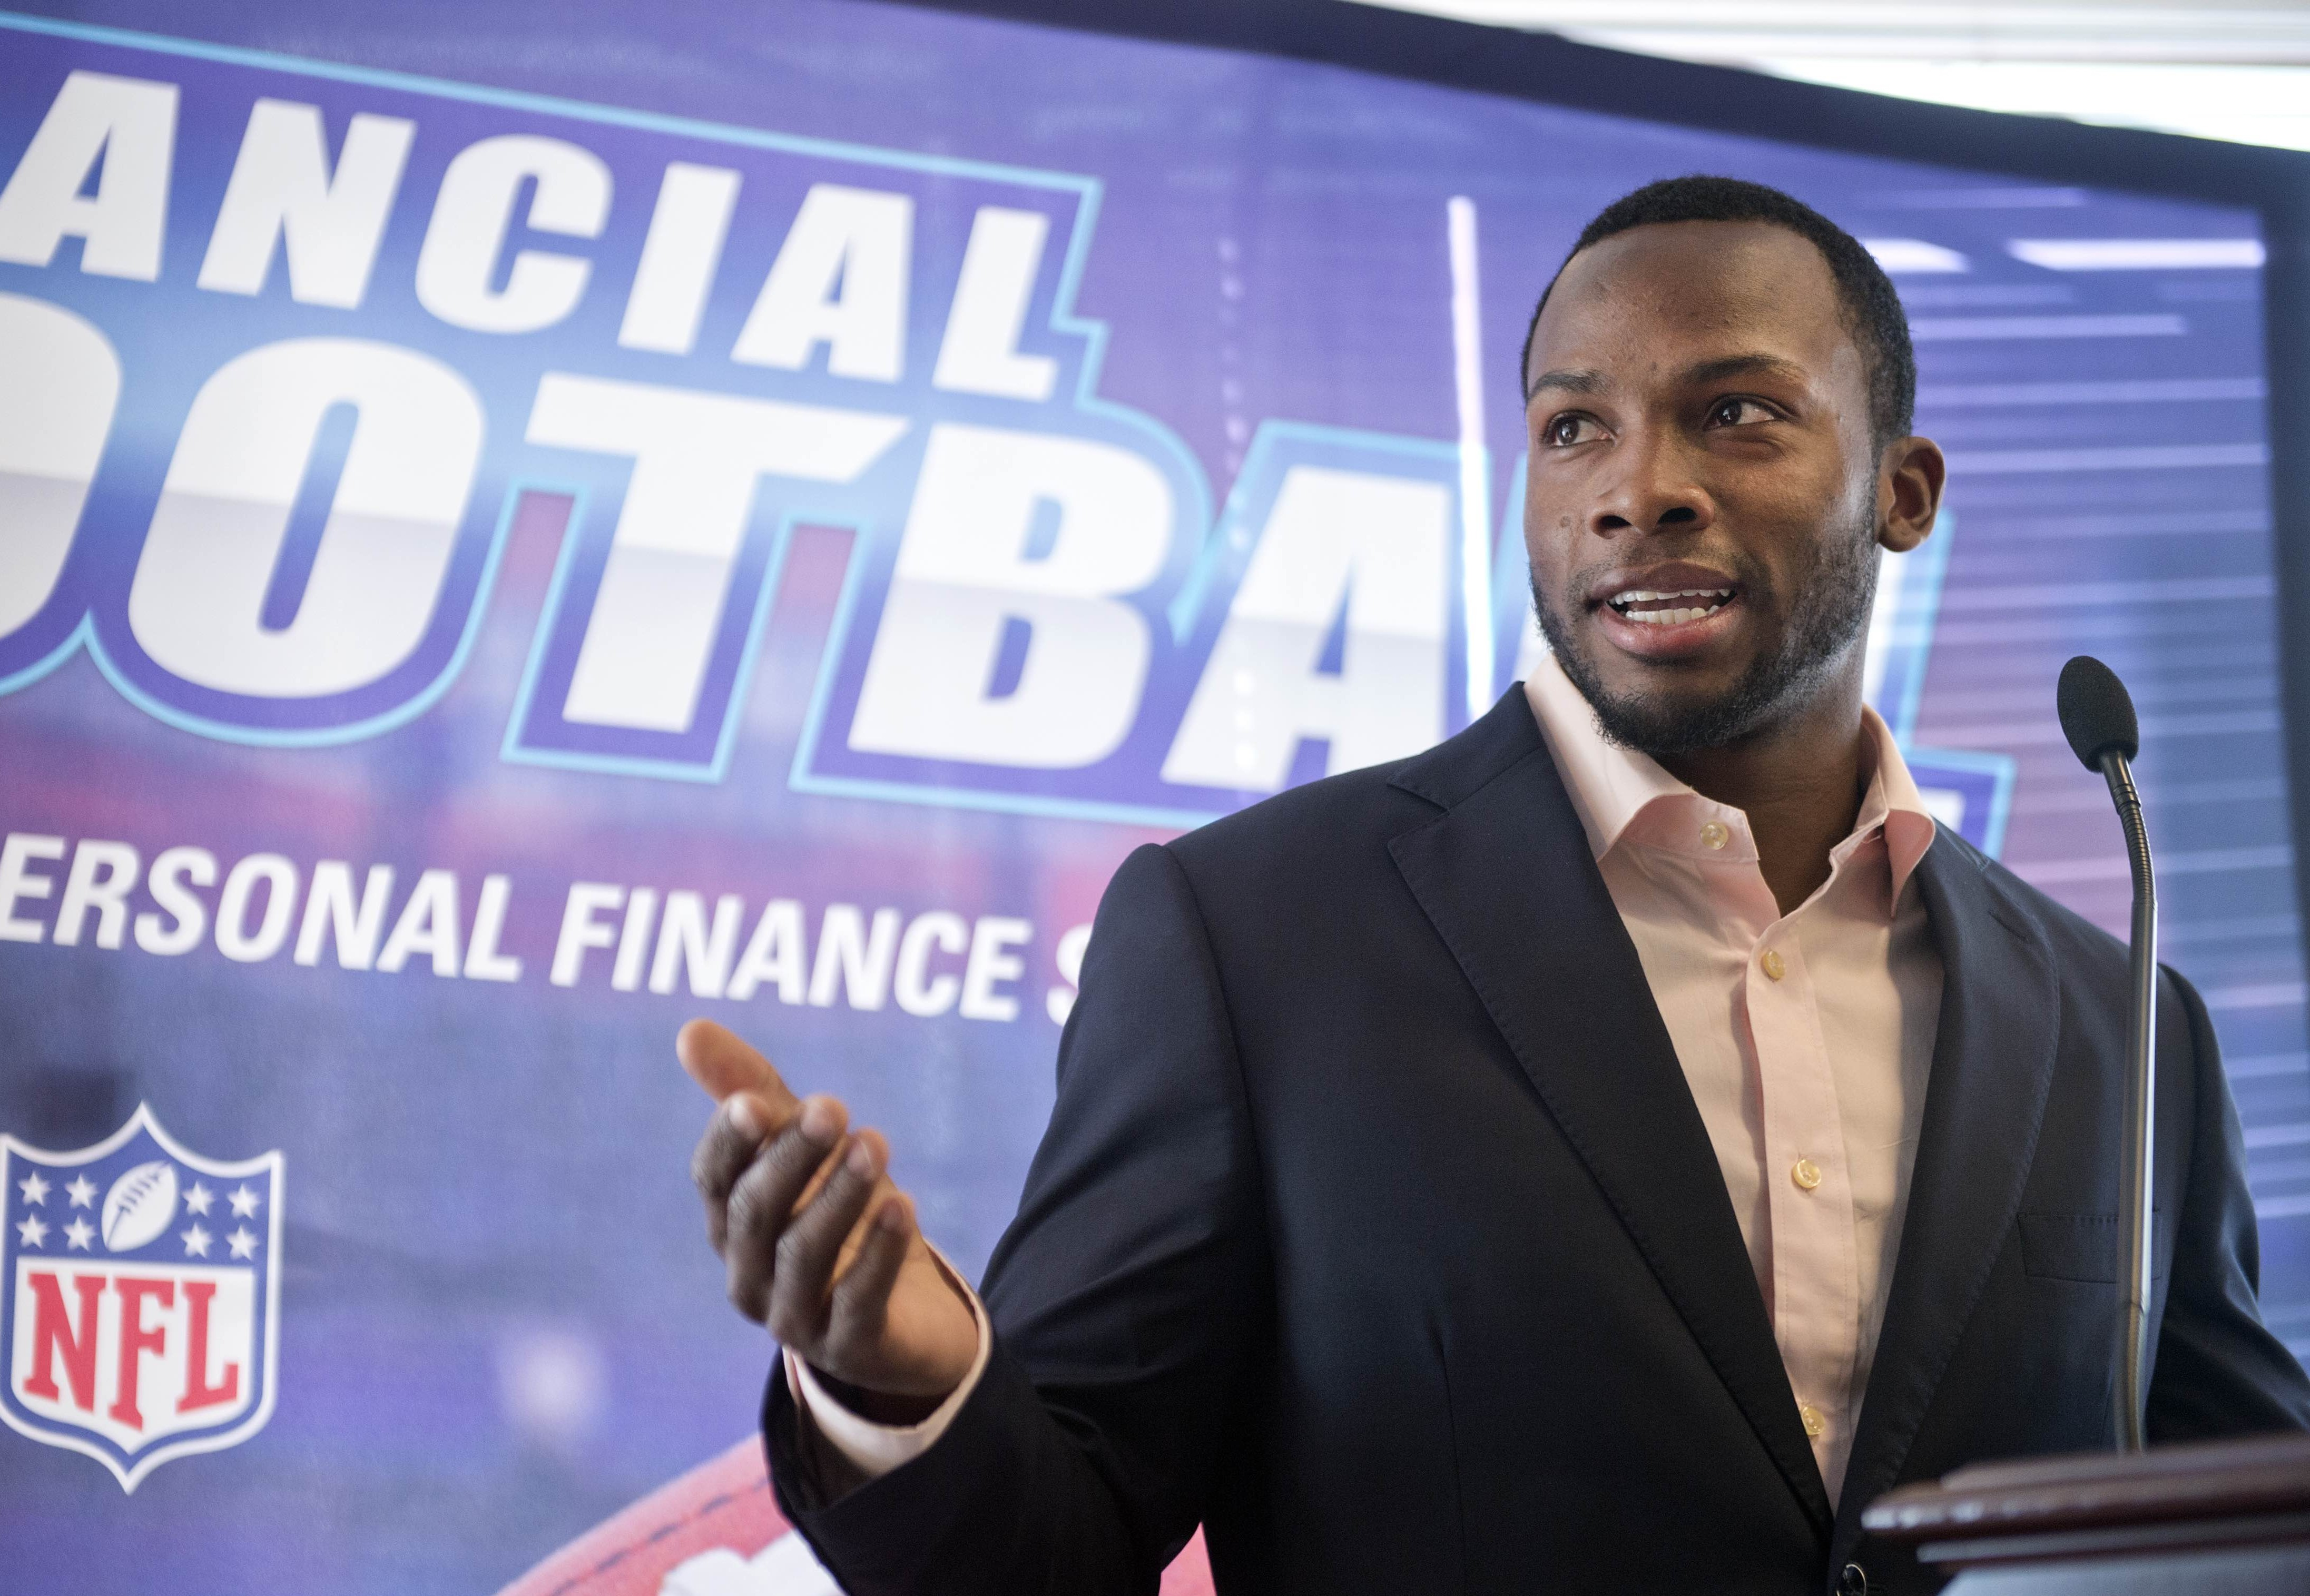 """UNITED STATES - MARCH 18: Detroit Lions wide receiver Ryan Broyles speaks during an event at 101 Constitution Avenue with the National Bankers Association, Visa, and NFL players, to educate teens about financial responsibility, March 18, 2015. At the event, teens and NFL athletes Heisman Trophy winner and New Orleans Saints running back Mark Ingram and Broyles, played """"Financial Football,"""" a free educational video game that incorporates football and questions about money management. (Photo By Tom Williams/CQ Roll Call)"""